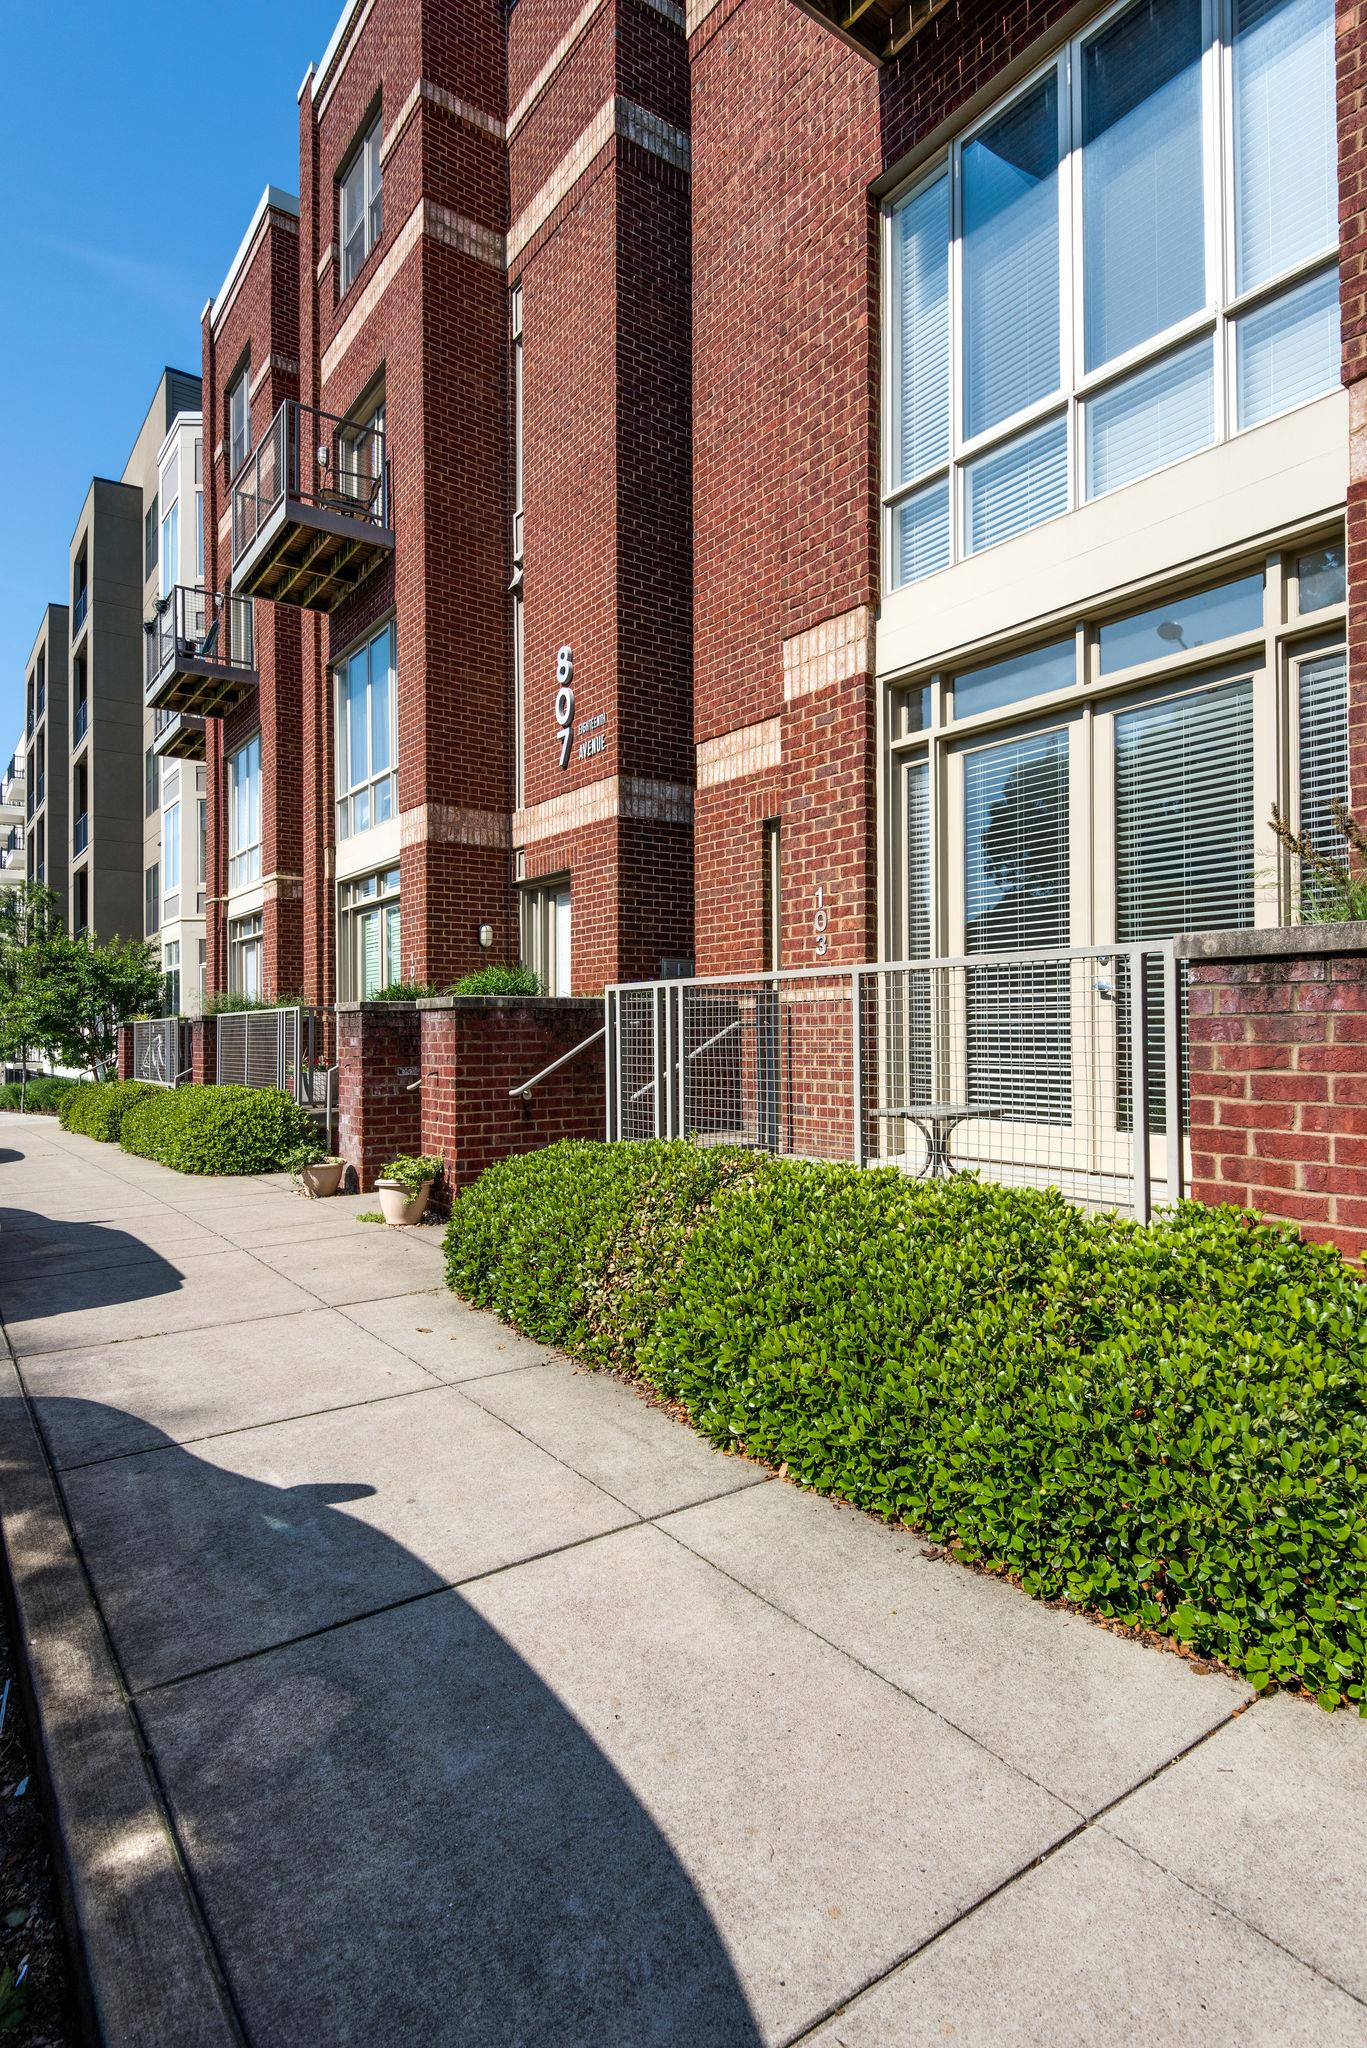 807 18Th Ave S Apt 311, Nashville - Midtown in Davidson County County, TN 37203 Home for Sale